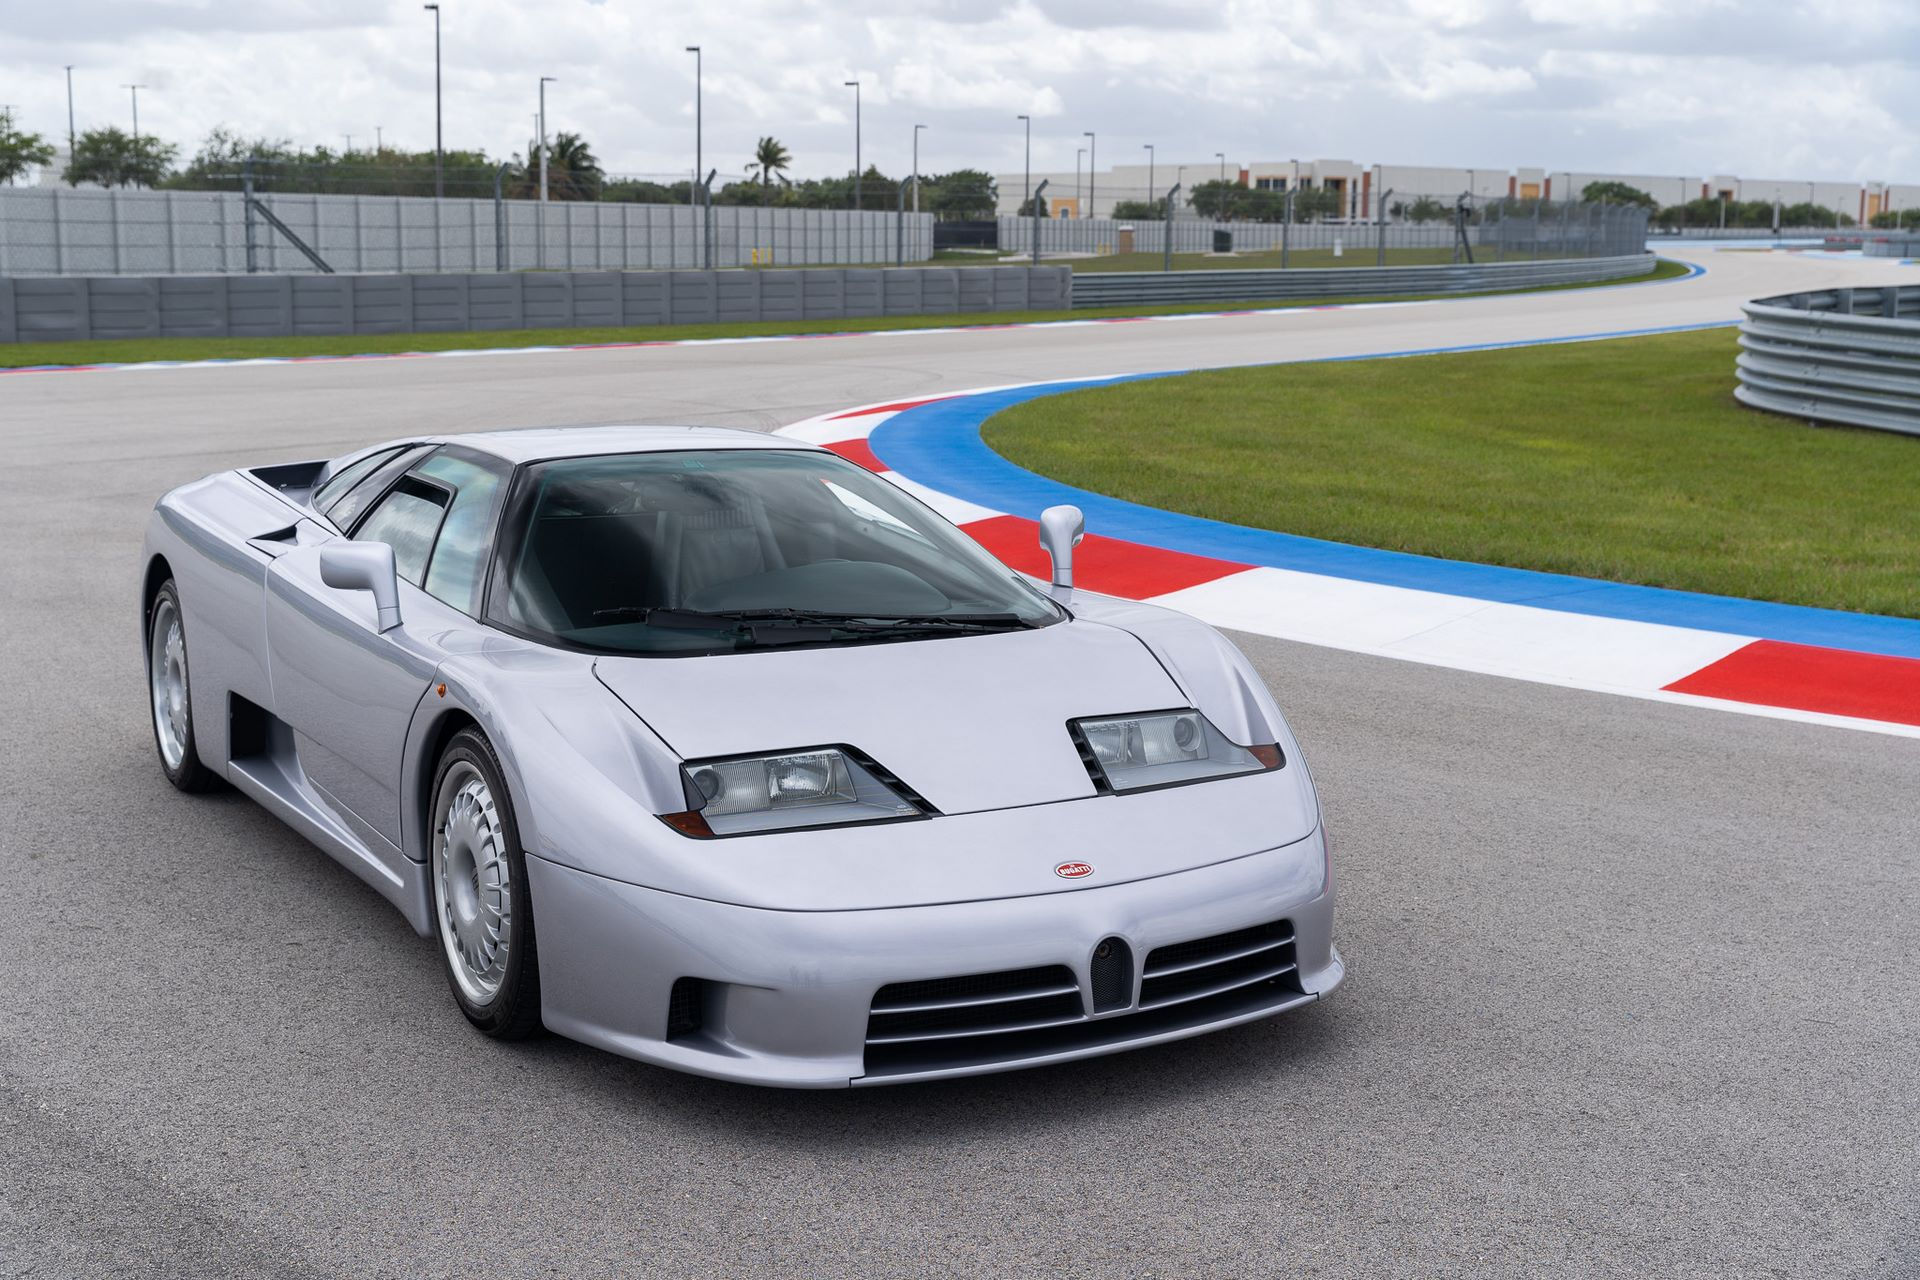 Bugatti-EB110-GT-demo-car-for-sale-2